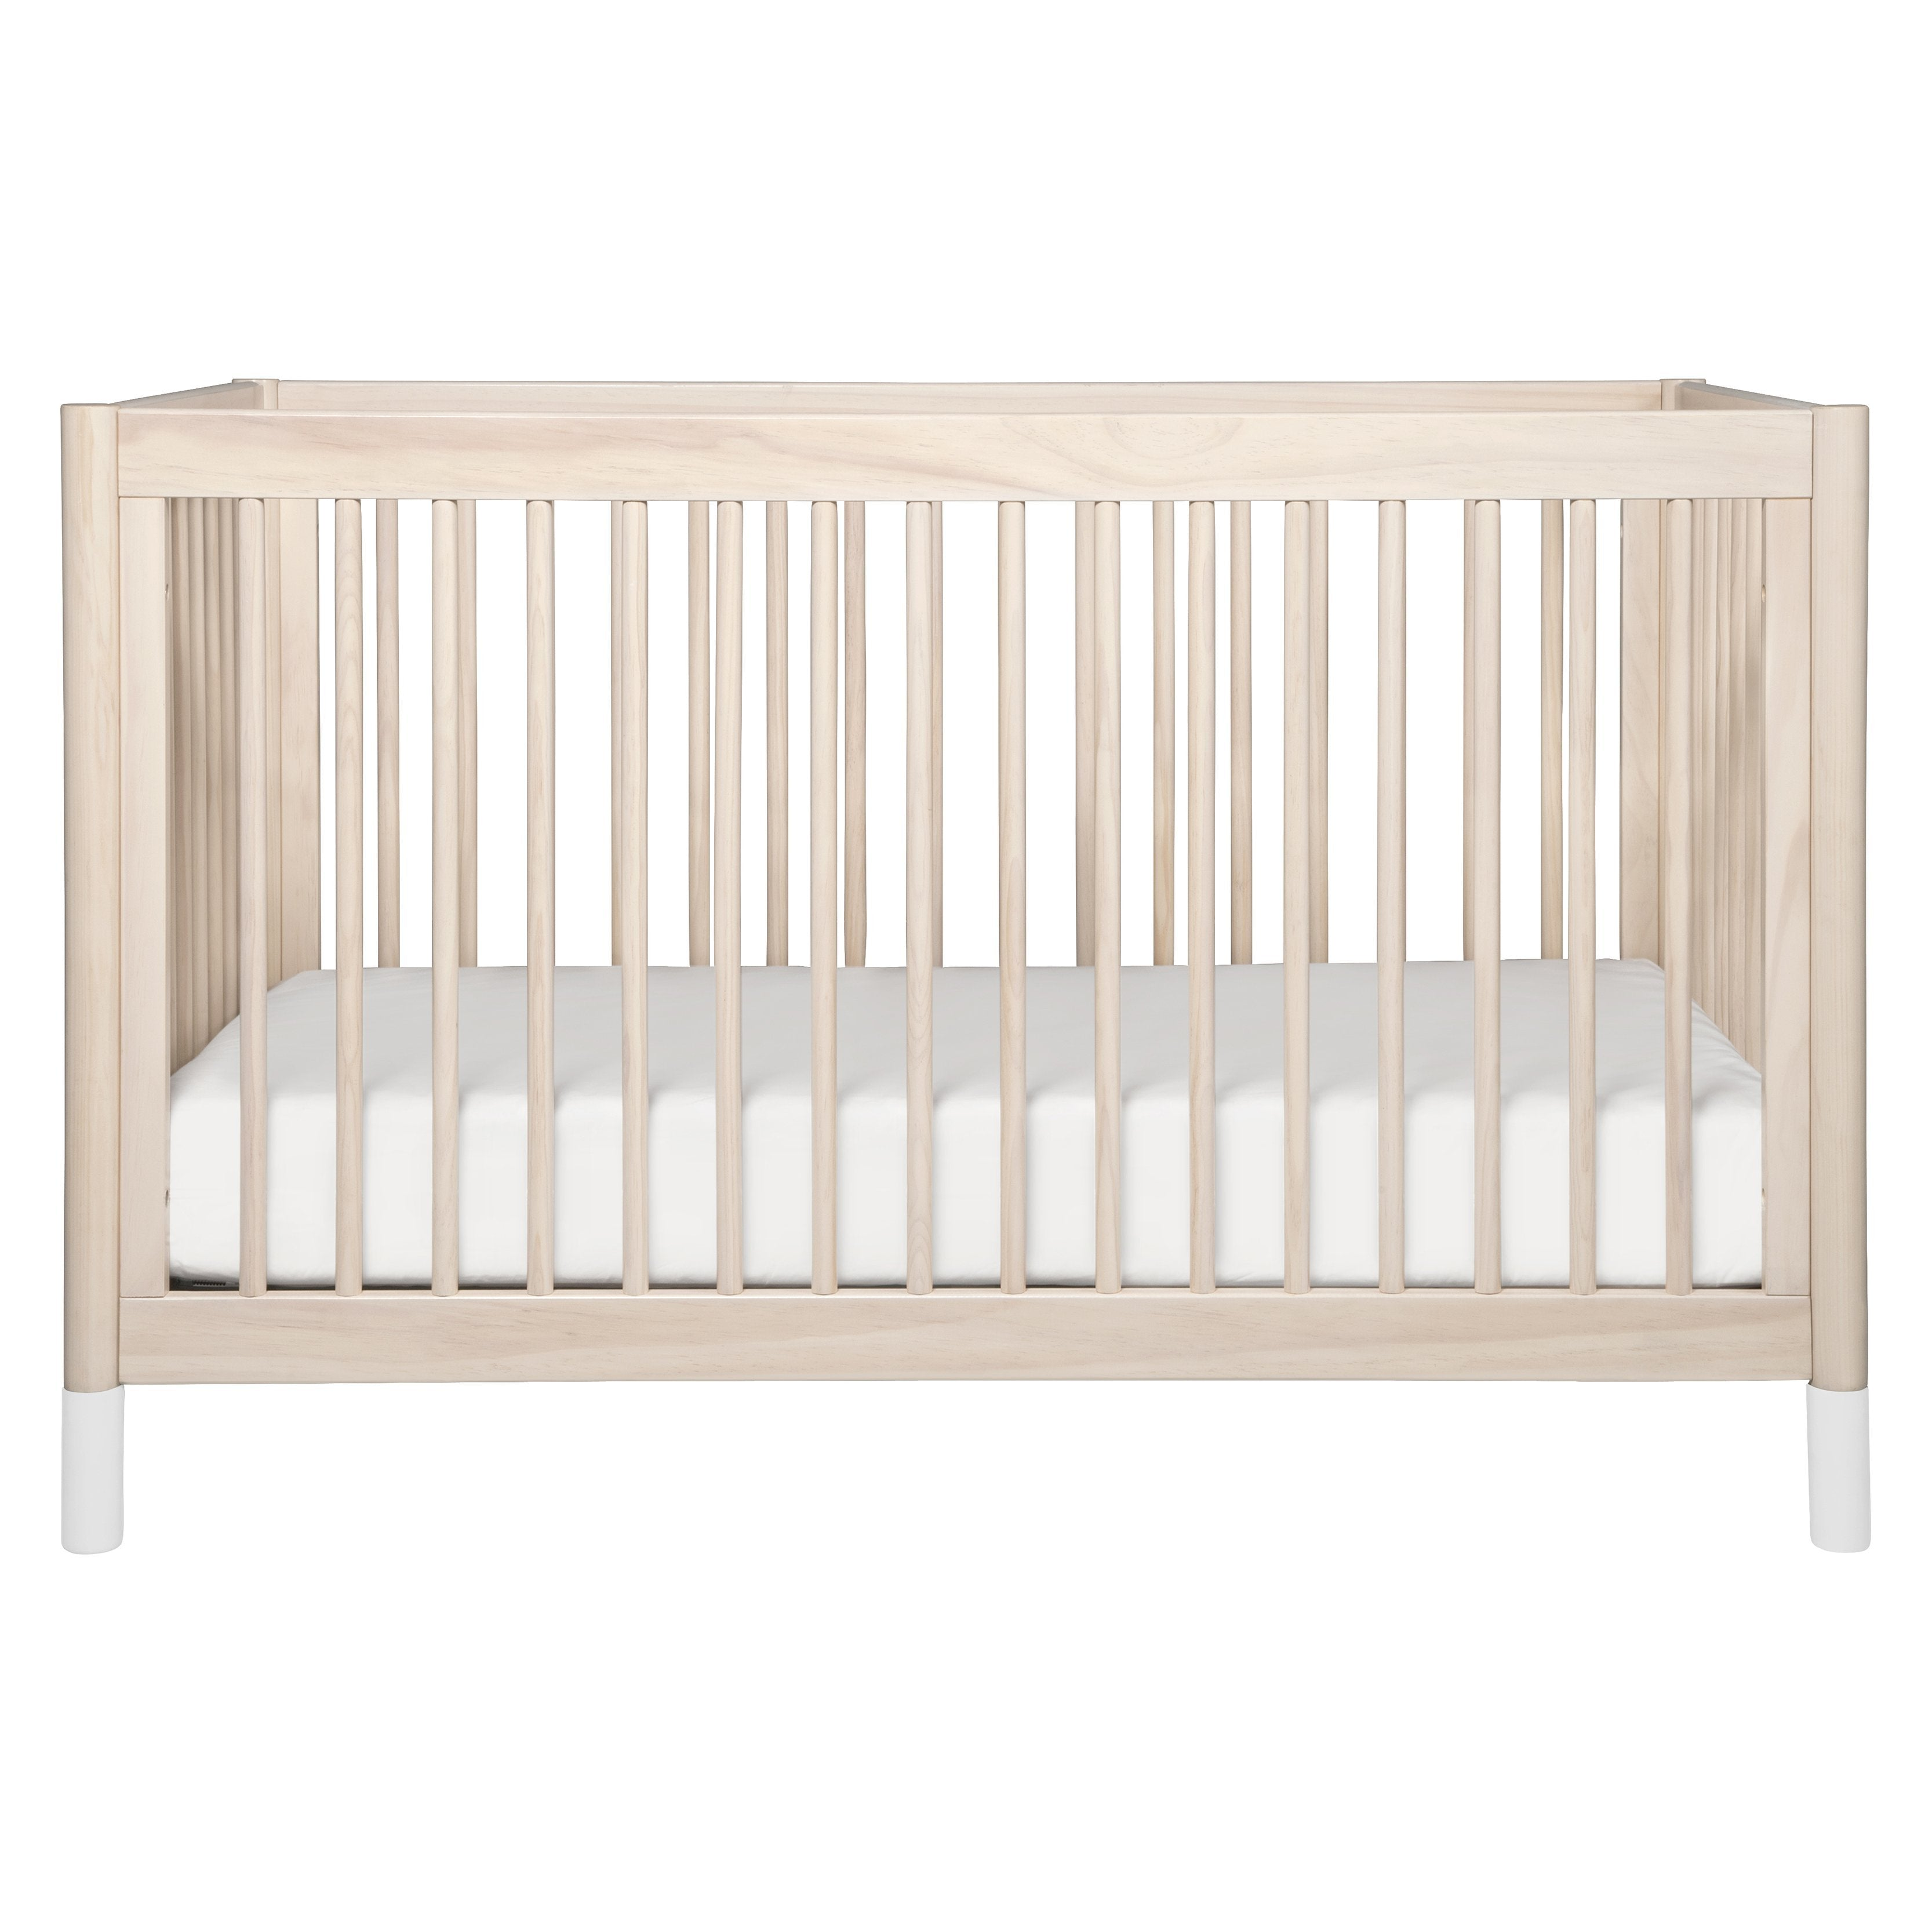 Gelato 4-in-1 Crib with Toddler Bed Conversion Kit - Project Nursery